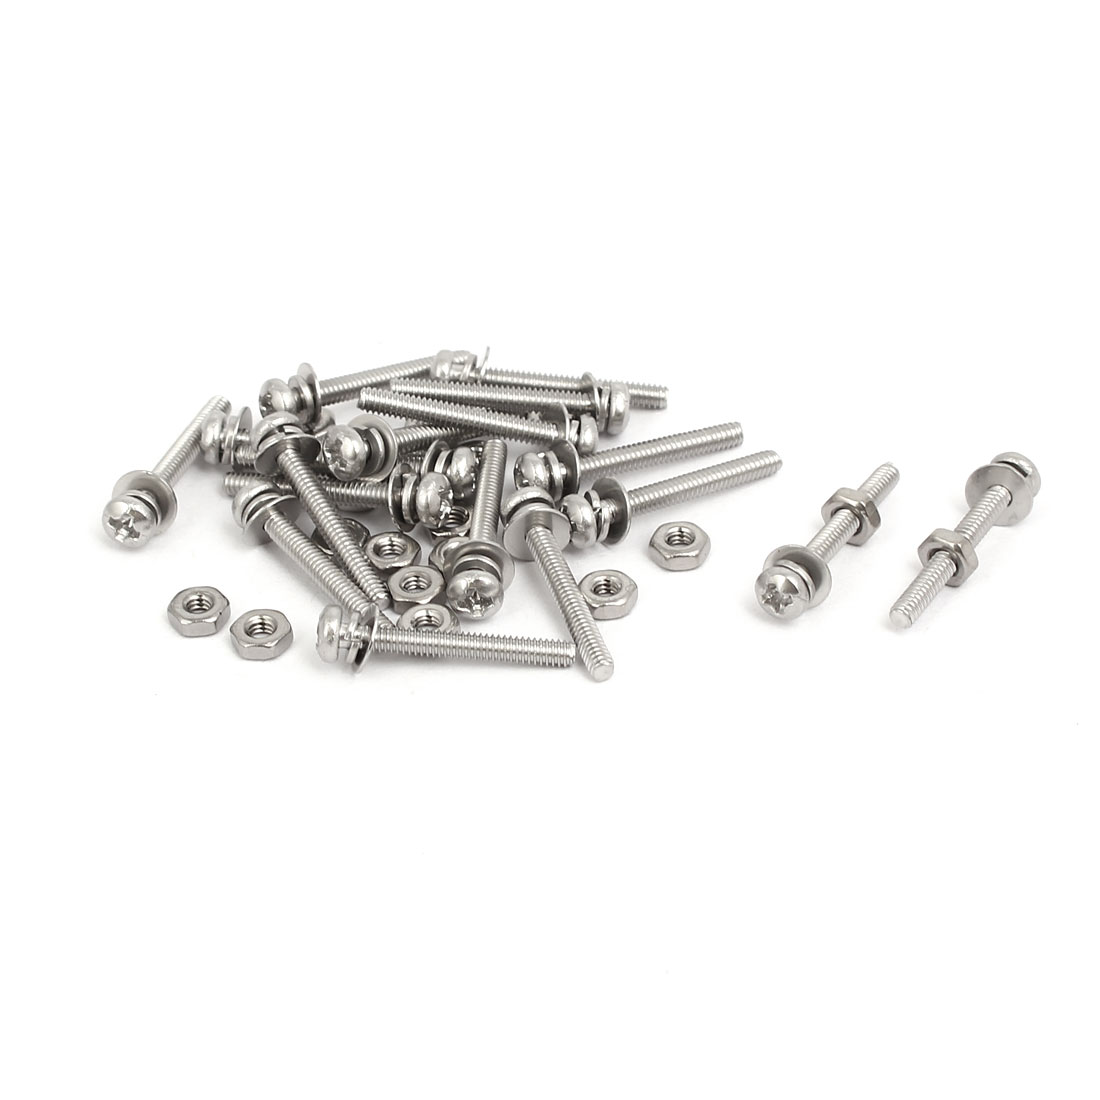 M2x16mm 304 Stainless Steel Phillips Pan Head Bolt Screw Nut w Washer 18 Sets - image 4 of 4